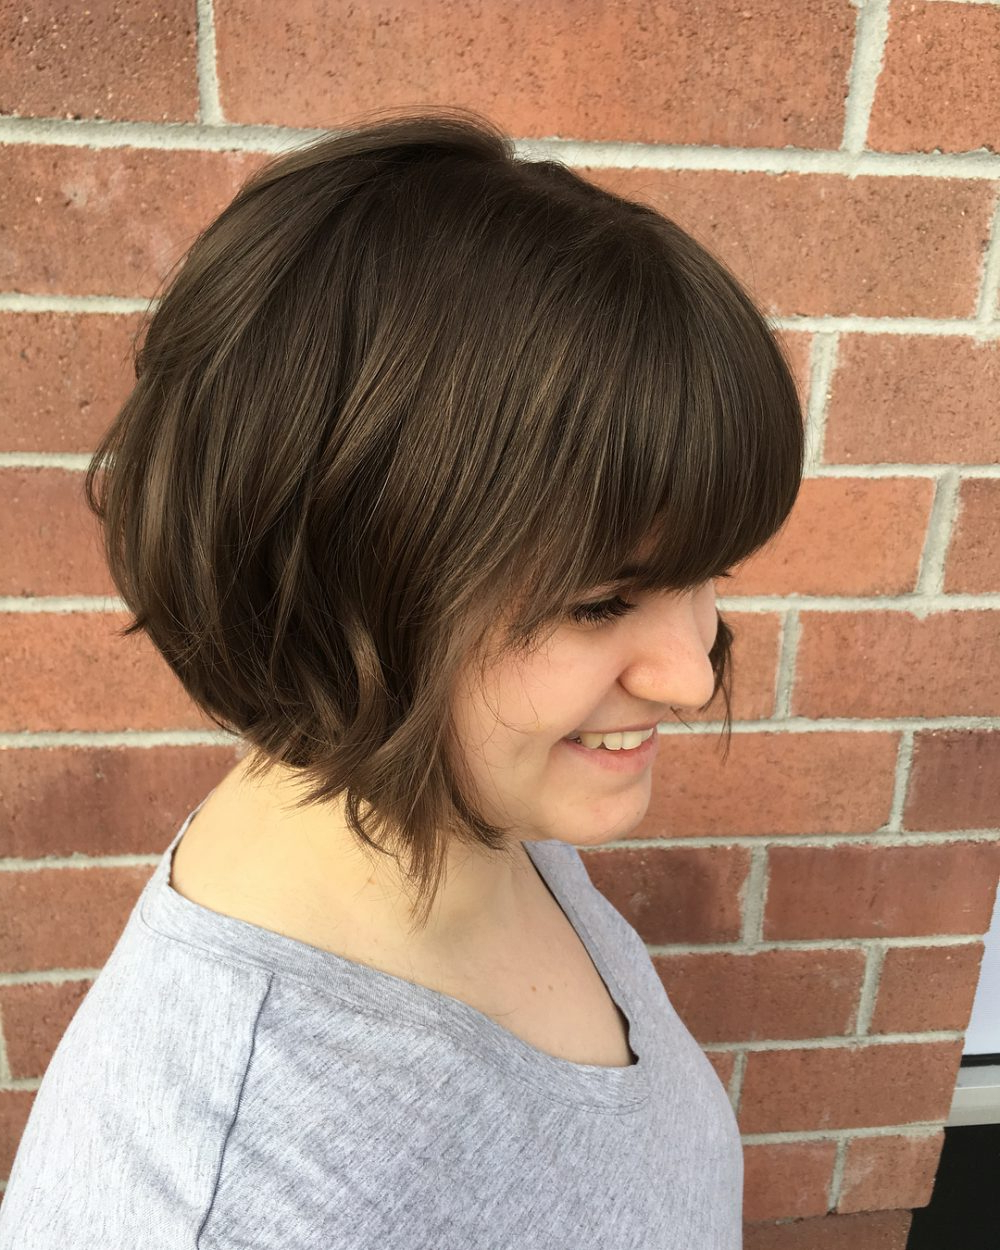 34 Greatest Short Haircuts And Hairstyles For Thick Hair For 2018 Inside Short Hairsyles For Thick Wavy Hair (View 13 of 25)